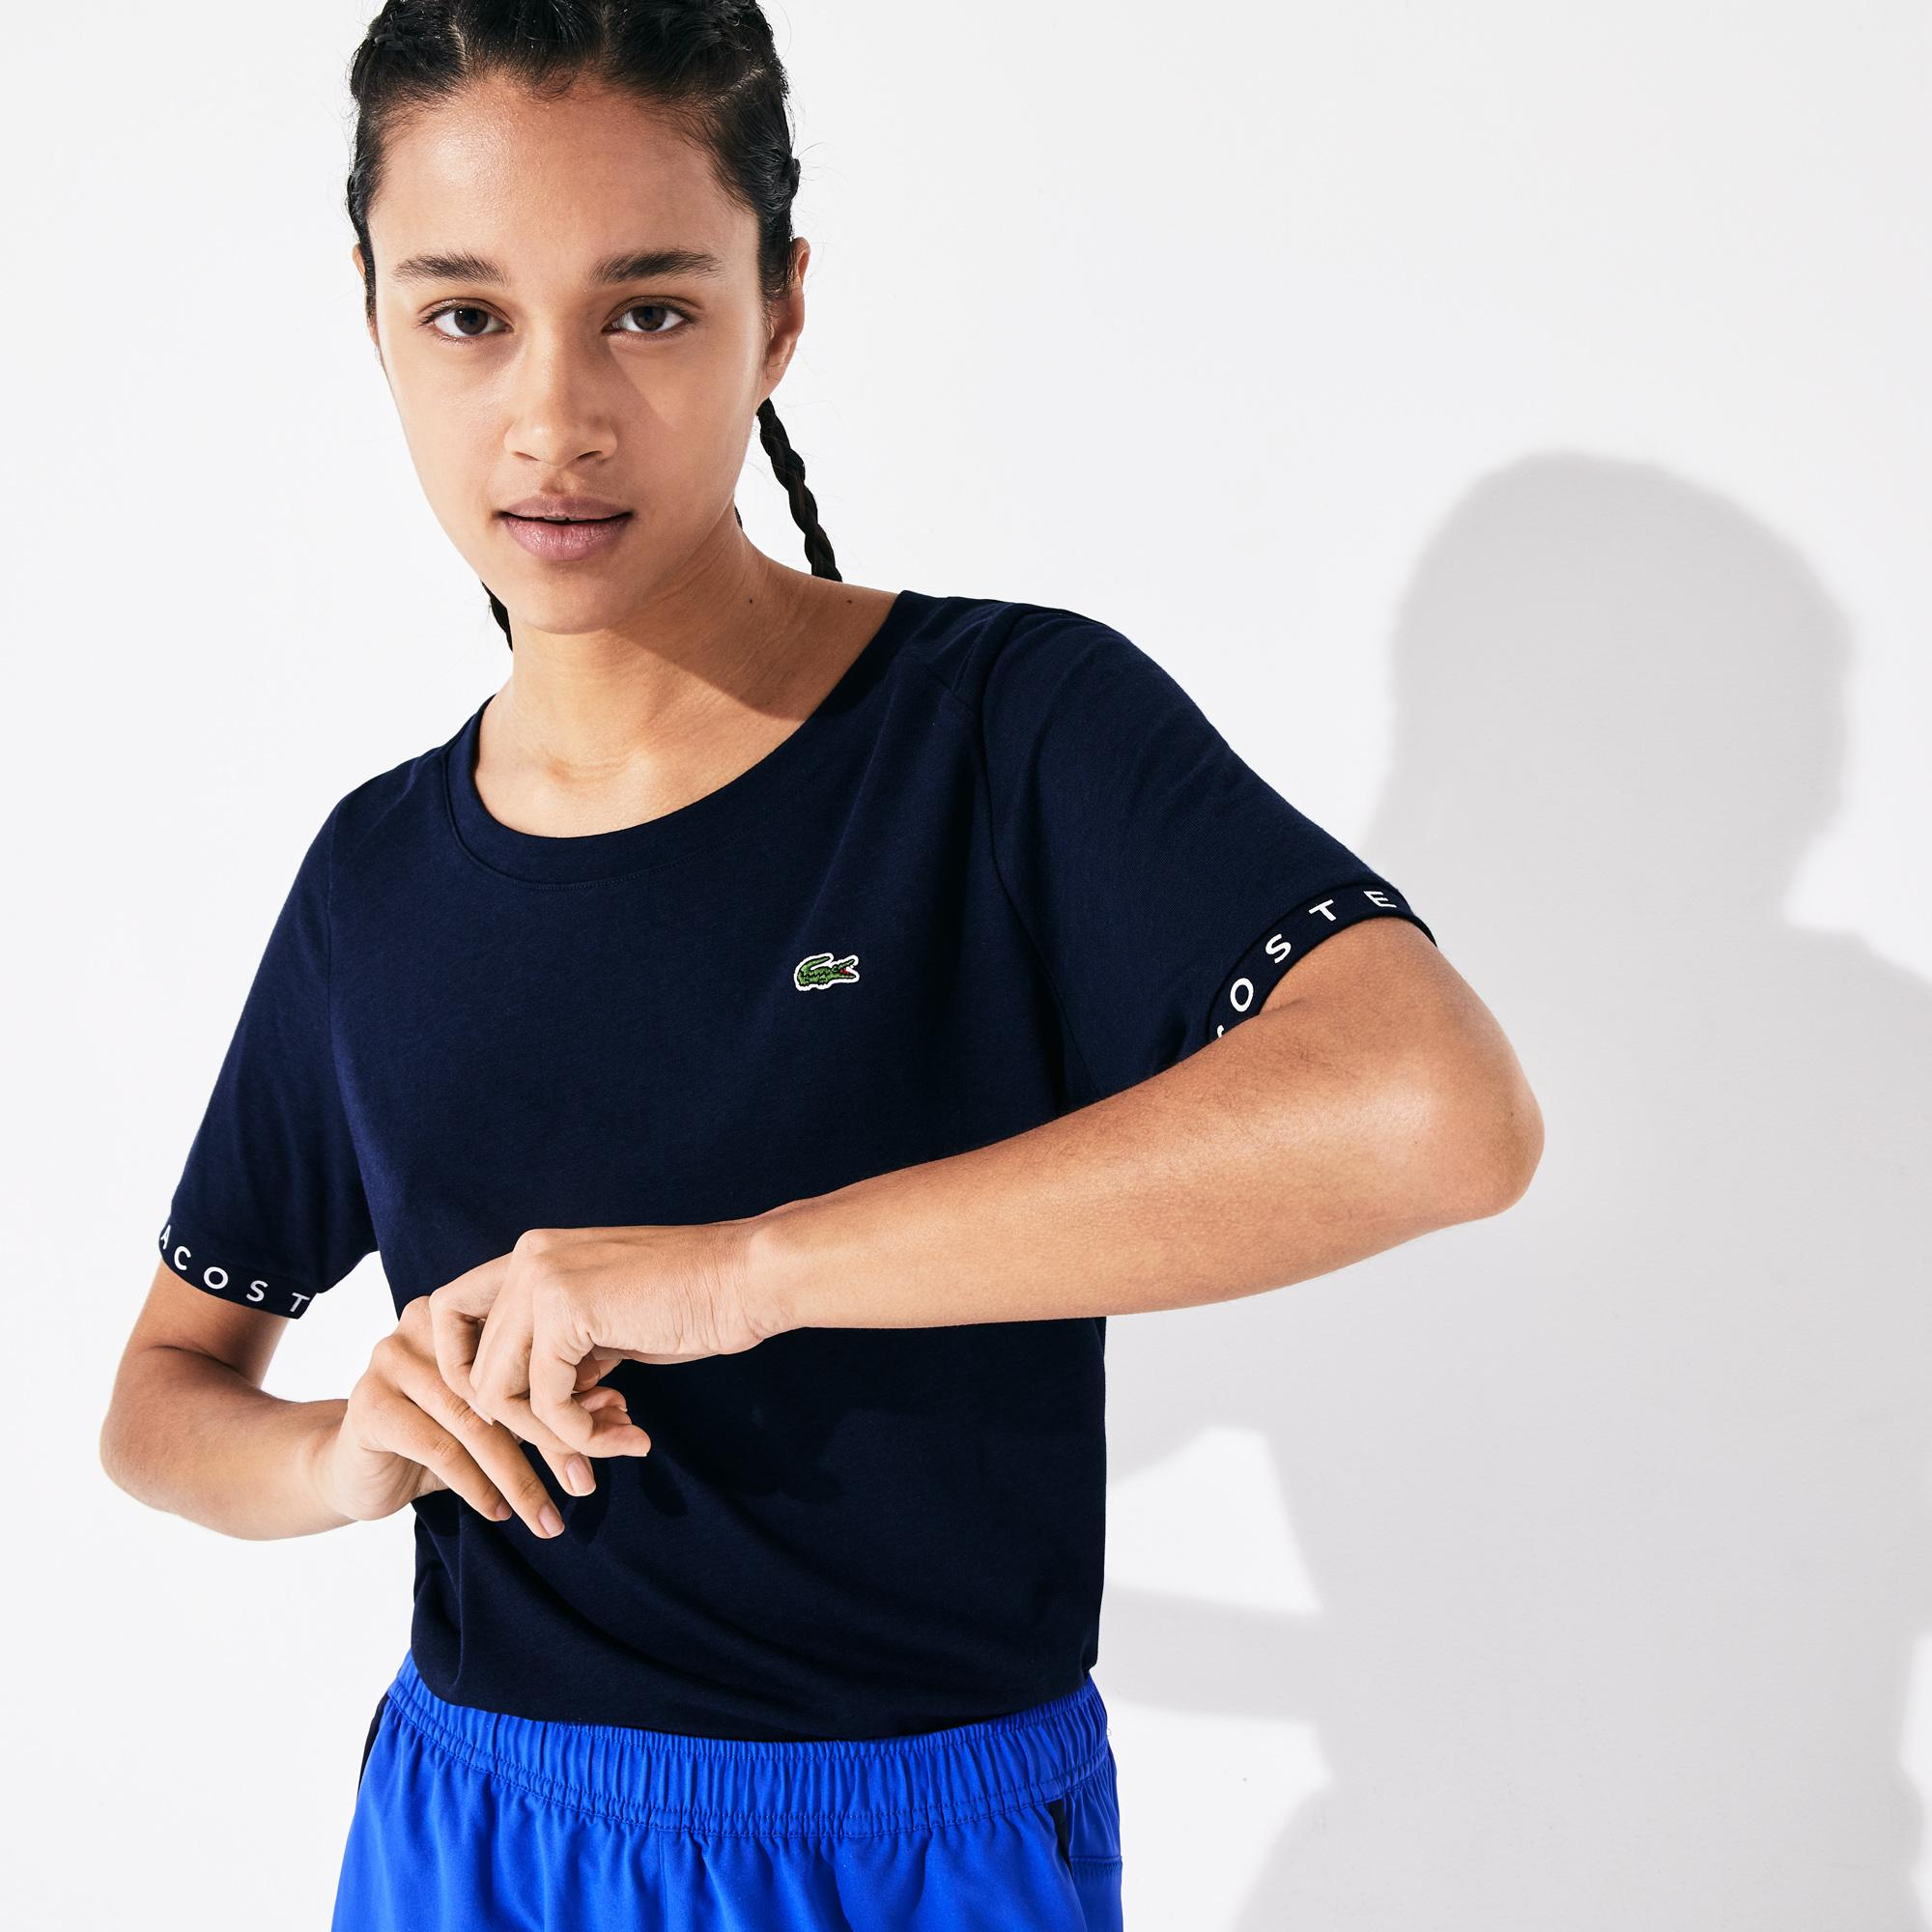 Lacoste Women's Sport Flowing Lettered Sleeve Tennis T-Shirt